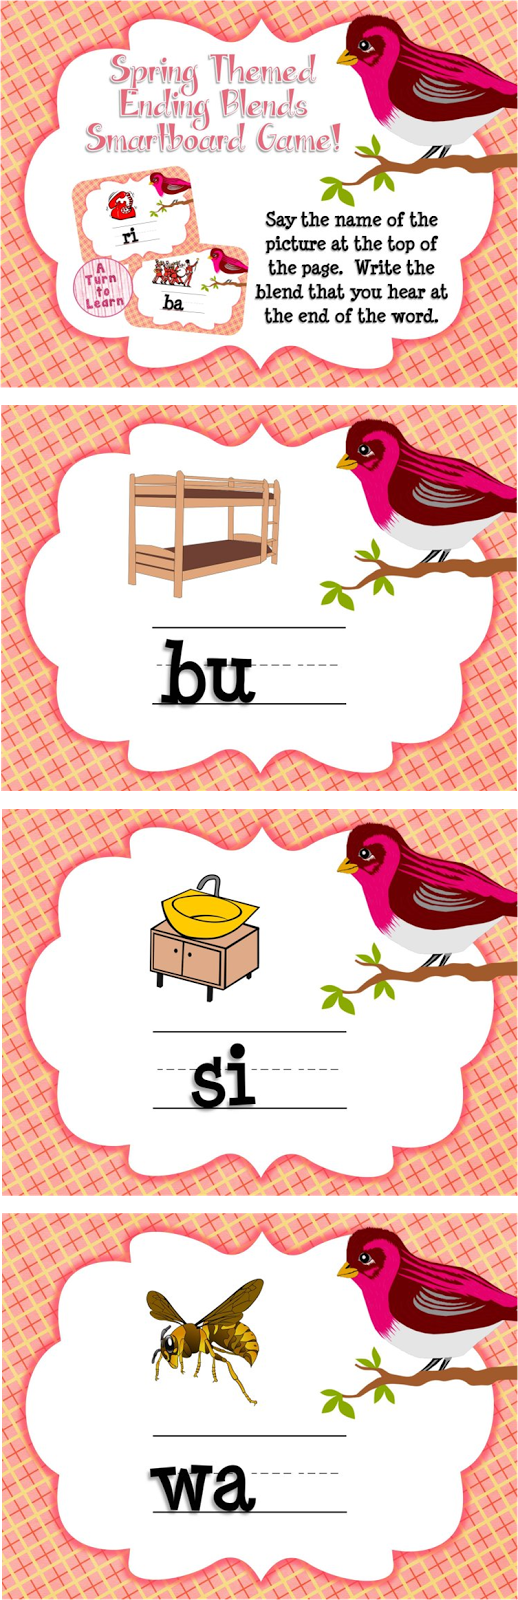 Spring Themed Ending Blends Game for Smartboard or Promethean Board